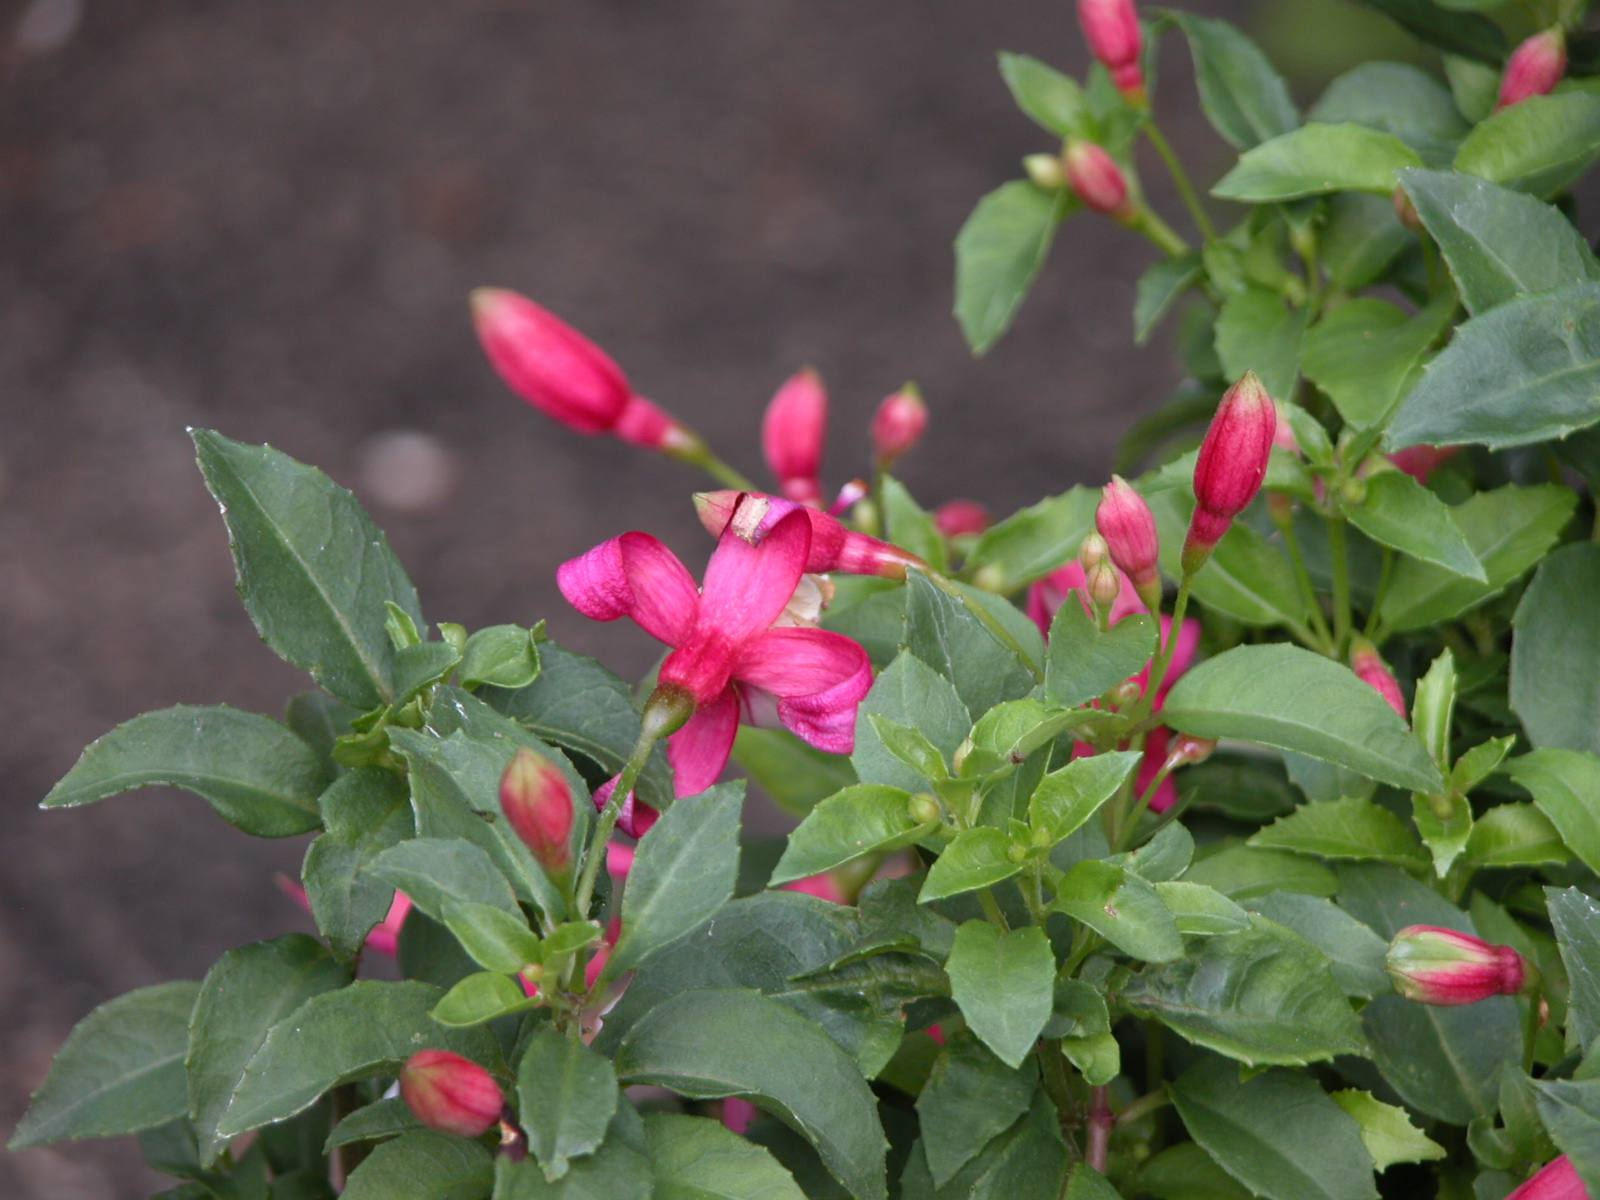 Fuchsia plant in bloom with about a dozen blooms.